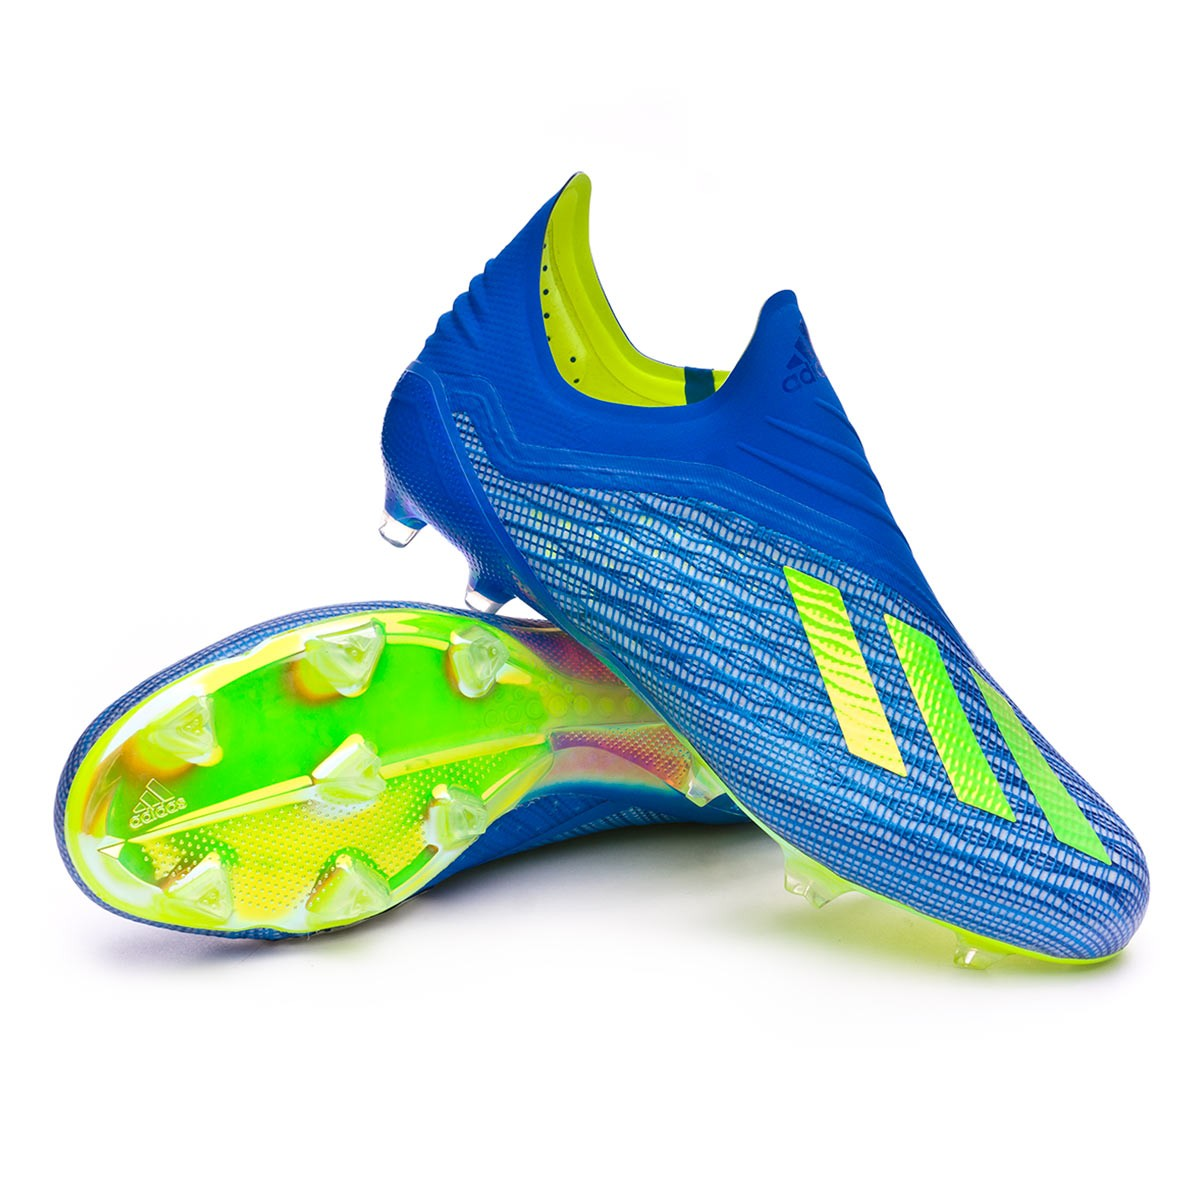 Boot adidas X 18+ FG Foot blue-Solar yellow-Black - Football